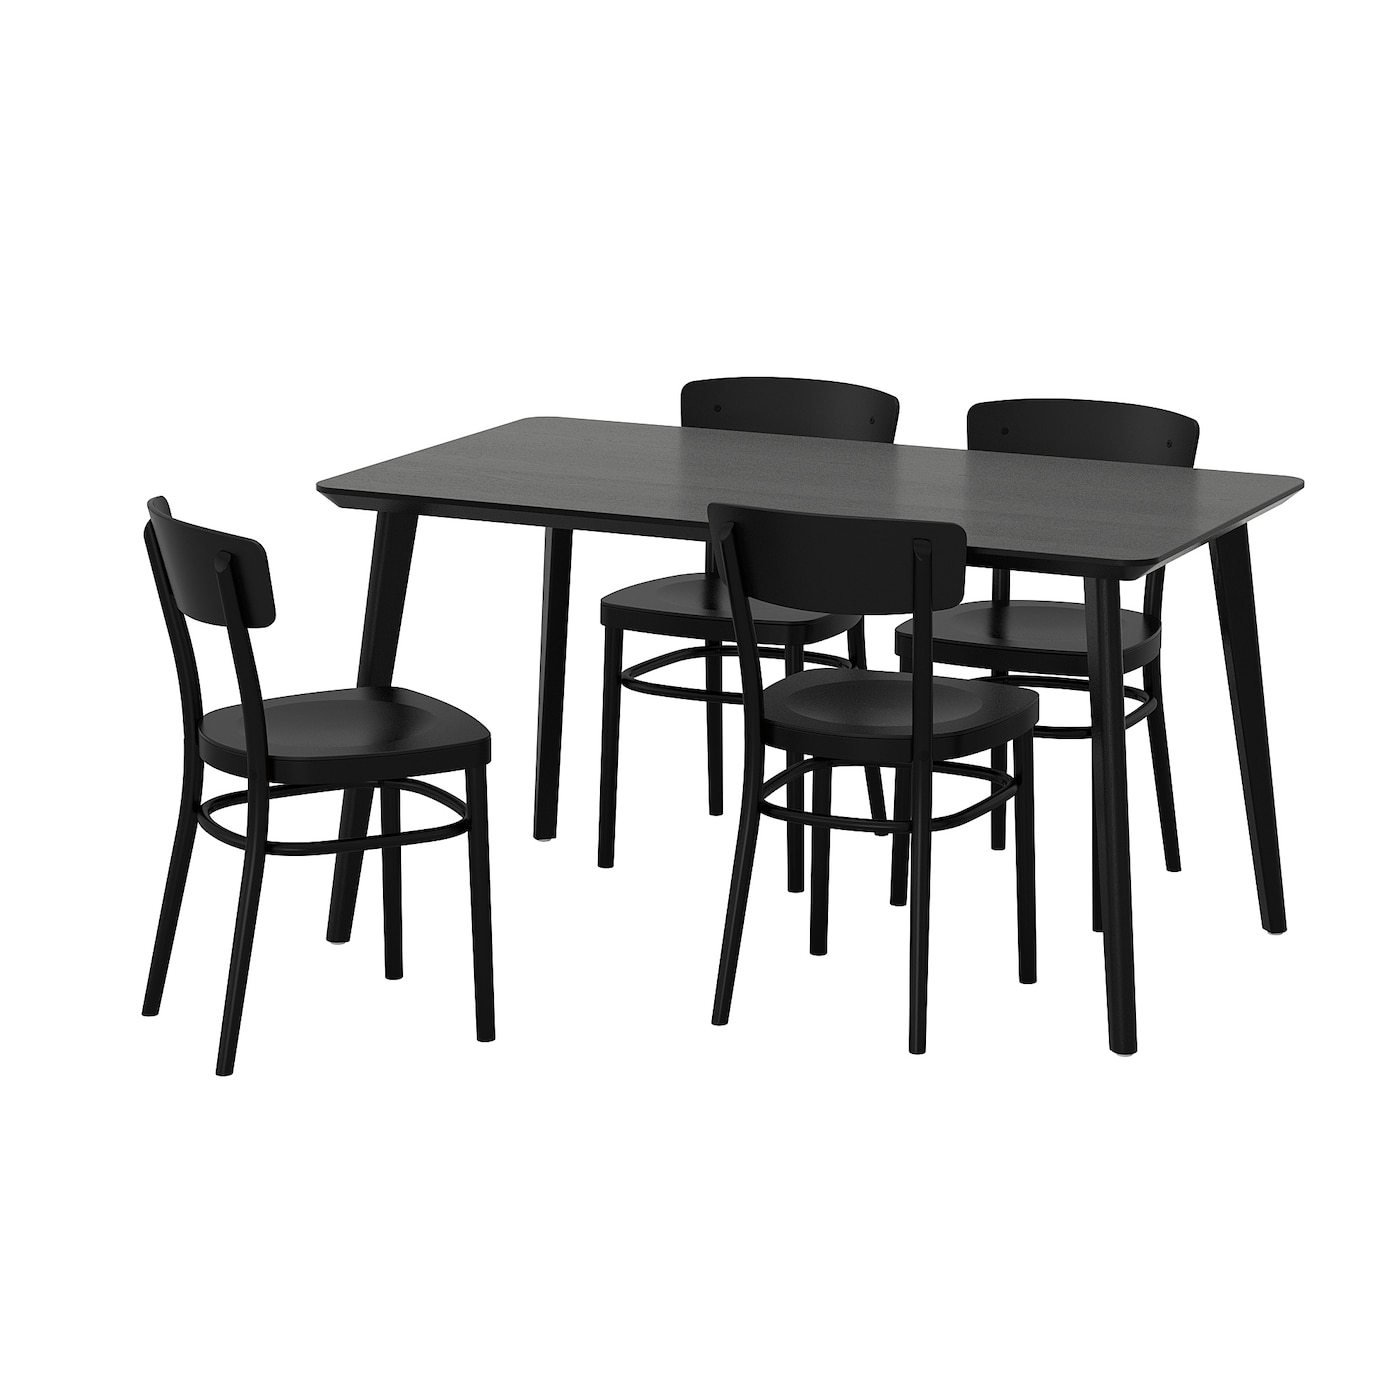 ikea dining room table idolf lisabo table and 4 chairs black black 140 x 78 cm ikea 29719